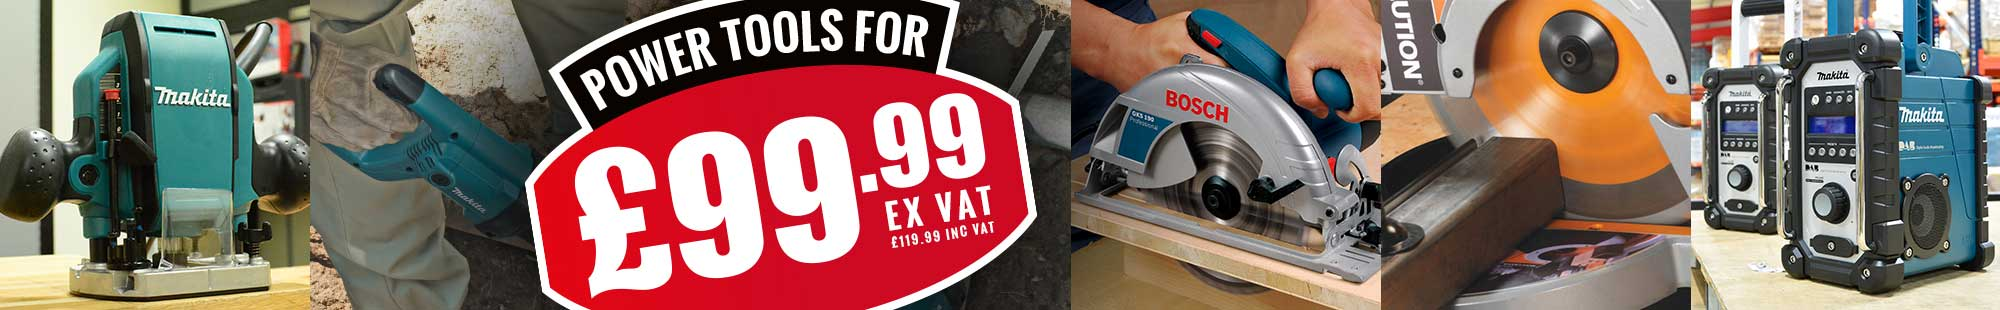 Power Tools for £99